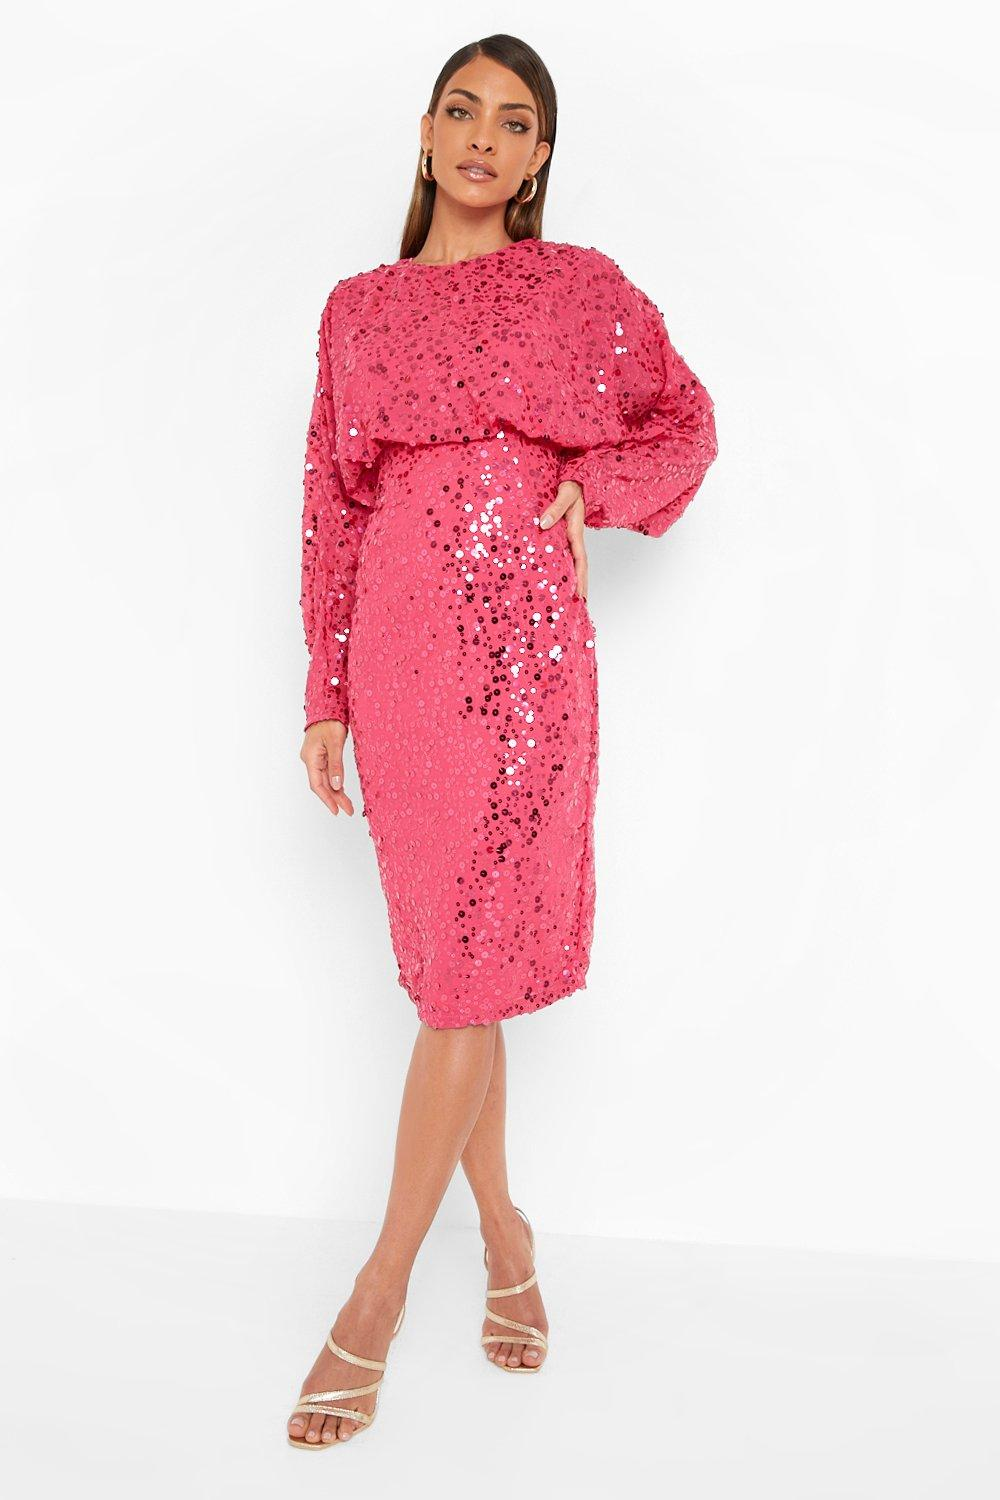 1980s Clothing, Fashion | 80s Style Clothes Womens Sequin Batwing Midi Dress - Pink - 12 $40.00 AT vintagedancer.com